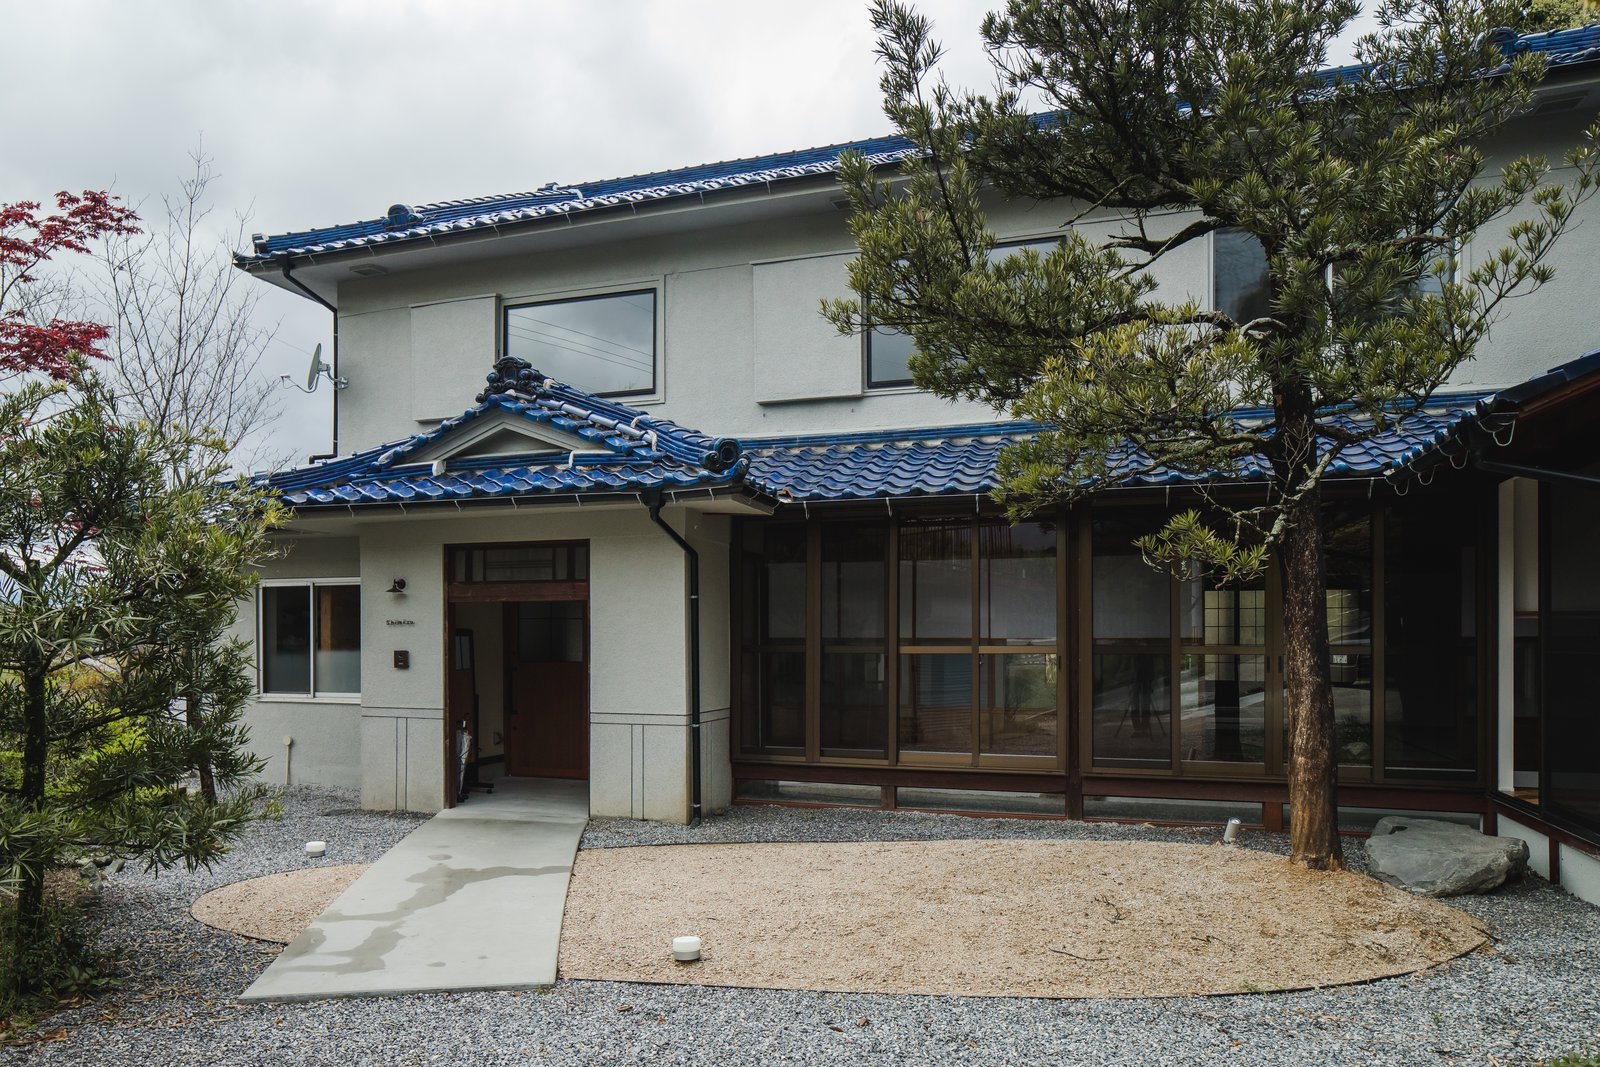 Before & After: An Old Japanese Farmhouse Gets a Modern Facelift